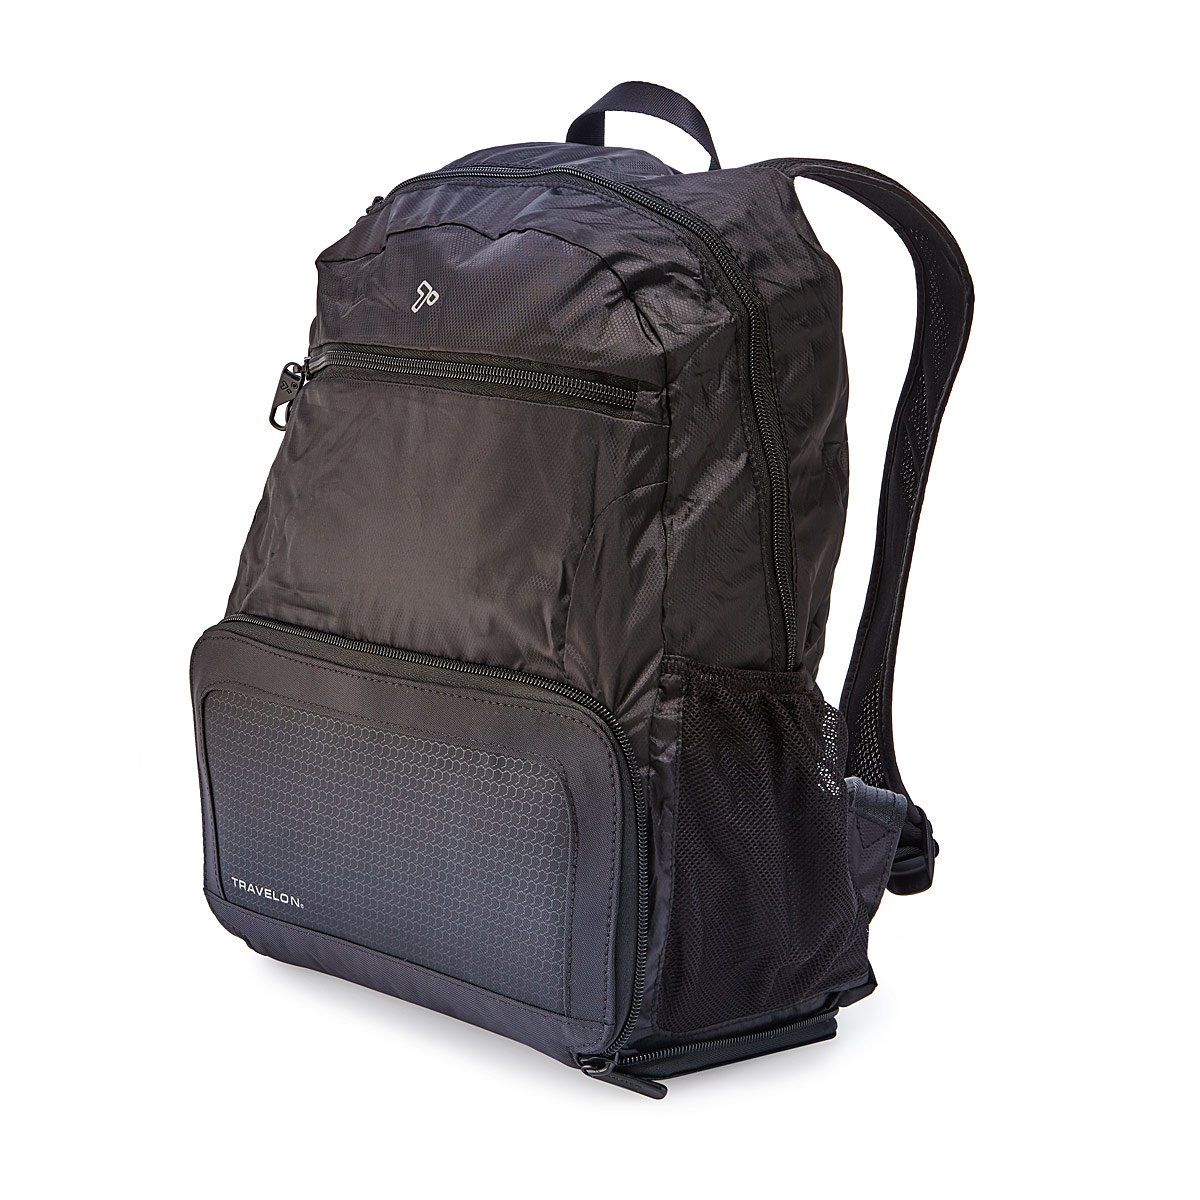 New Travelon Anti-Theft Active Packable Backpack